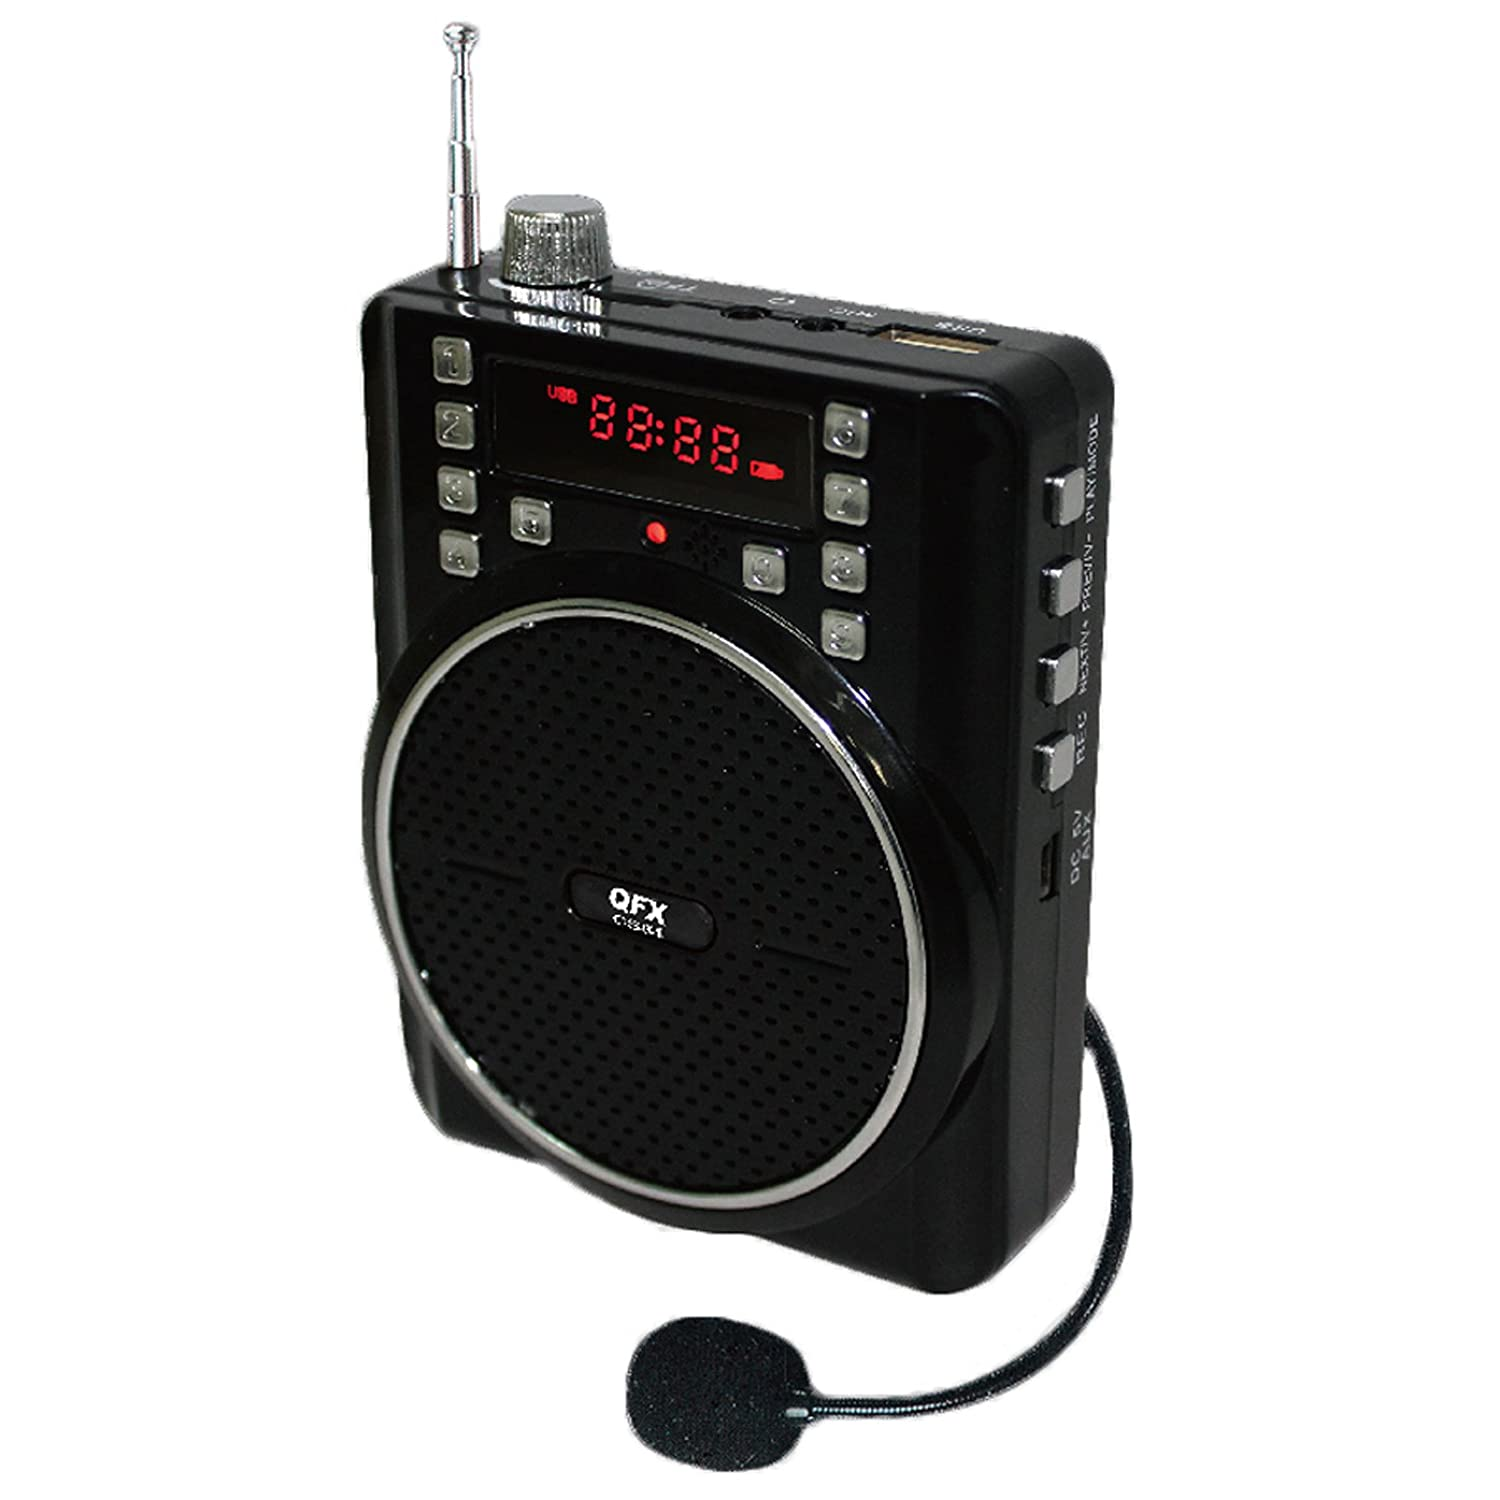 Portable Battery Heater Amazoncom Qfx Cs 84 Portable Pa System W Usb Micro Sd Fm Radio